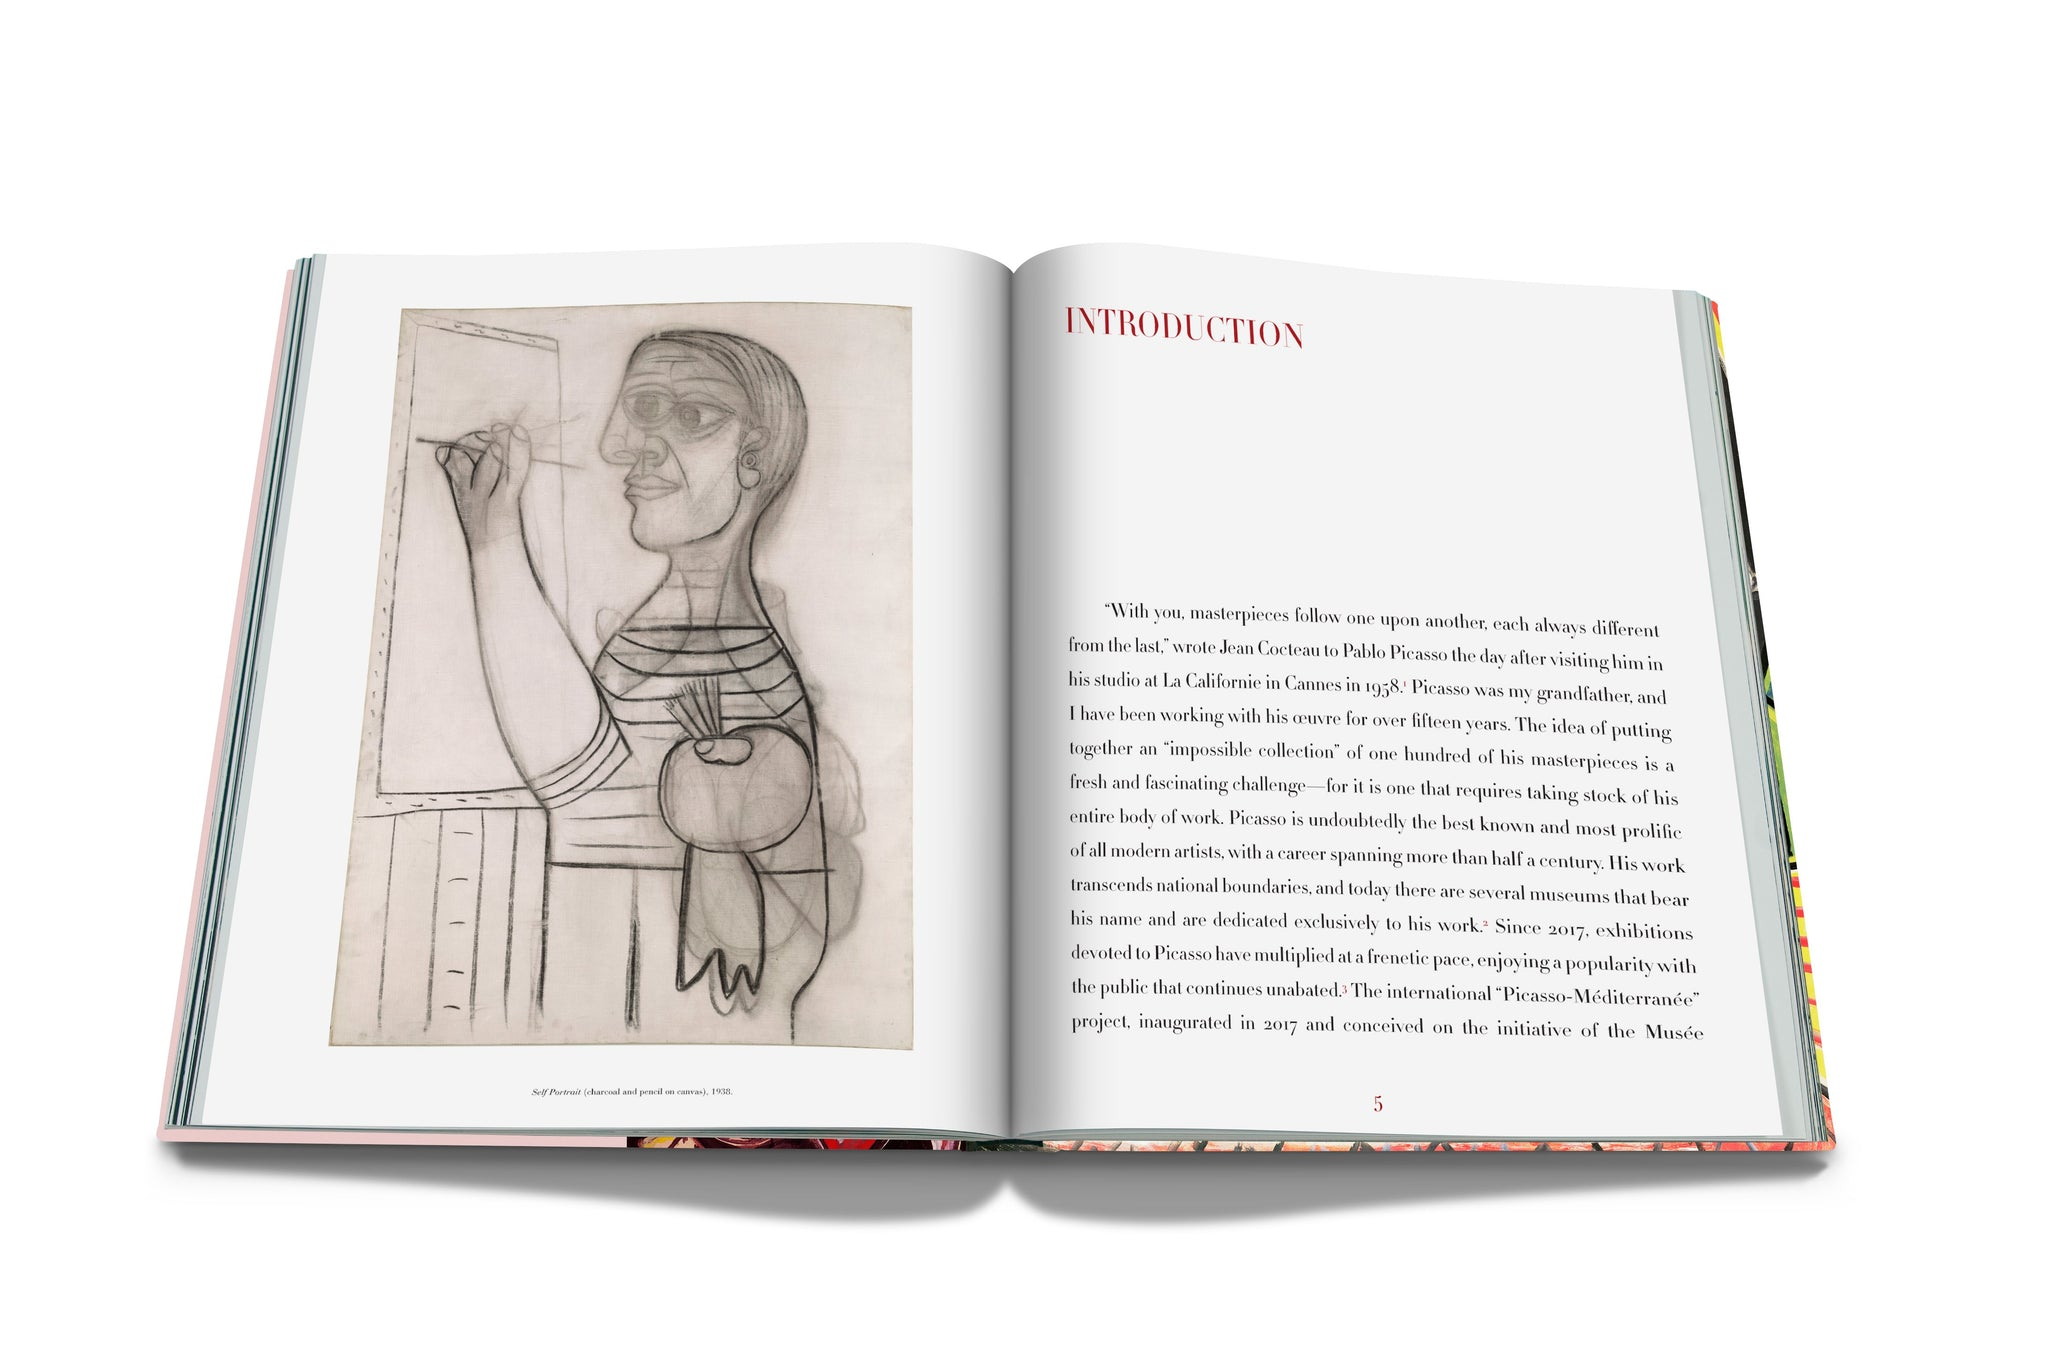 Pablo Picasso: The Impossible Collection